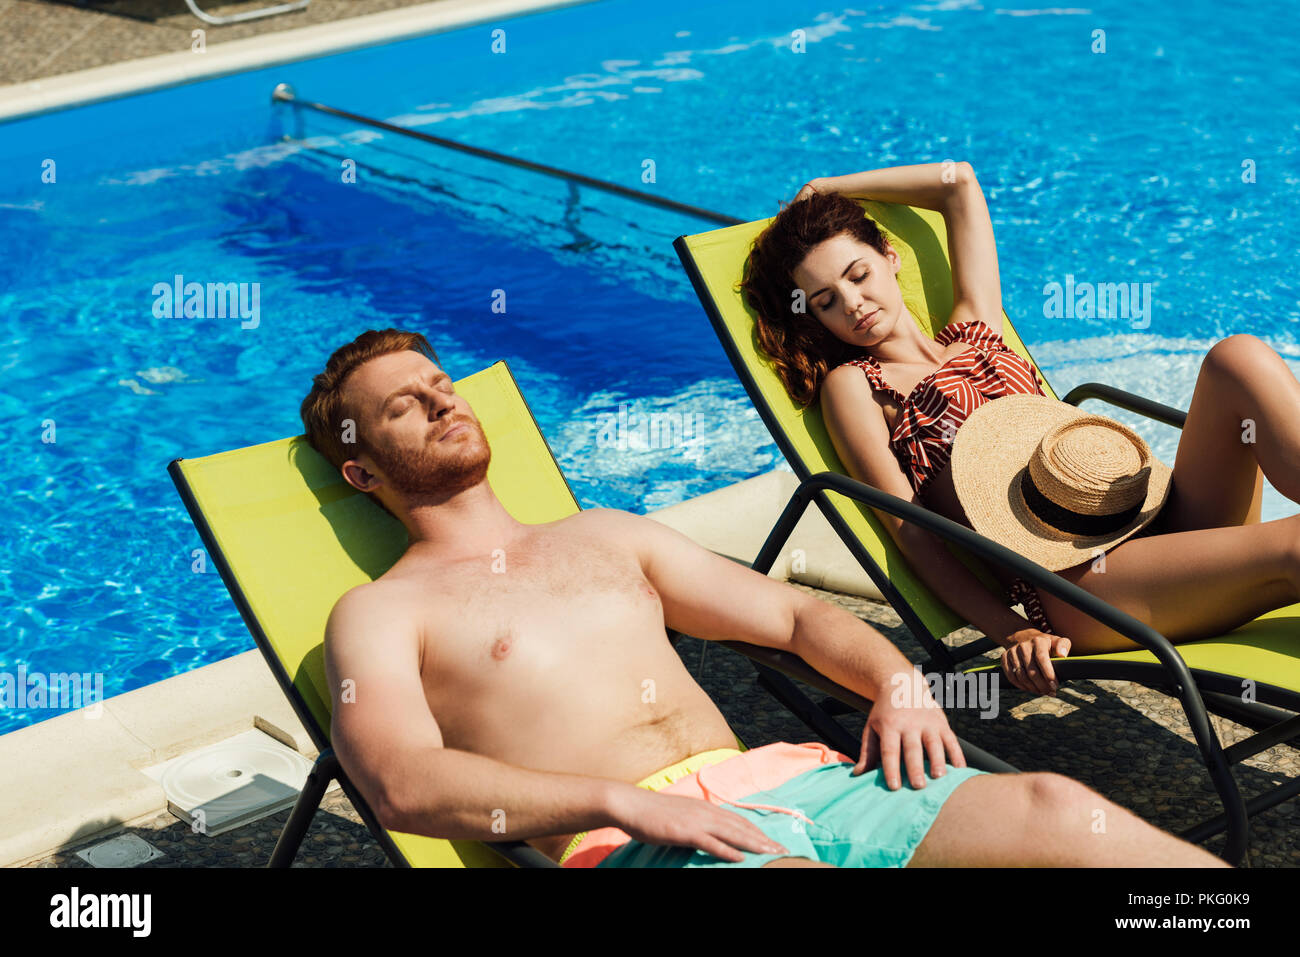 young couple tanning on sun loungers in front of swimming pool - Stock Image